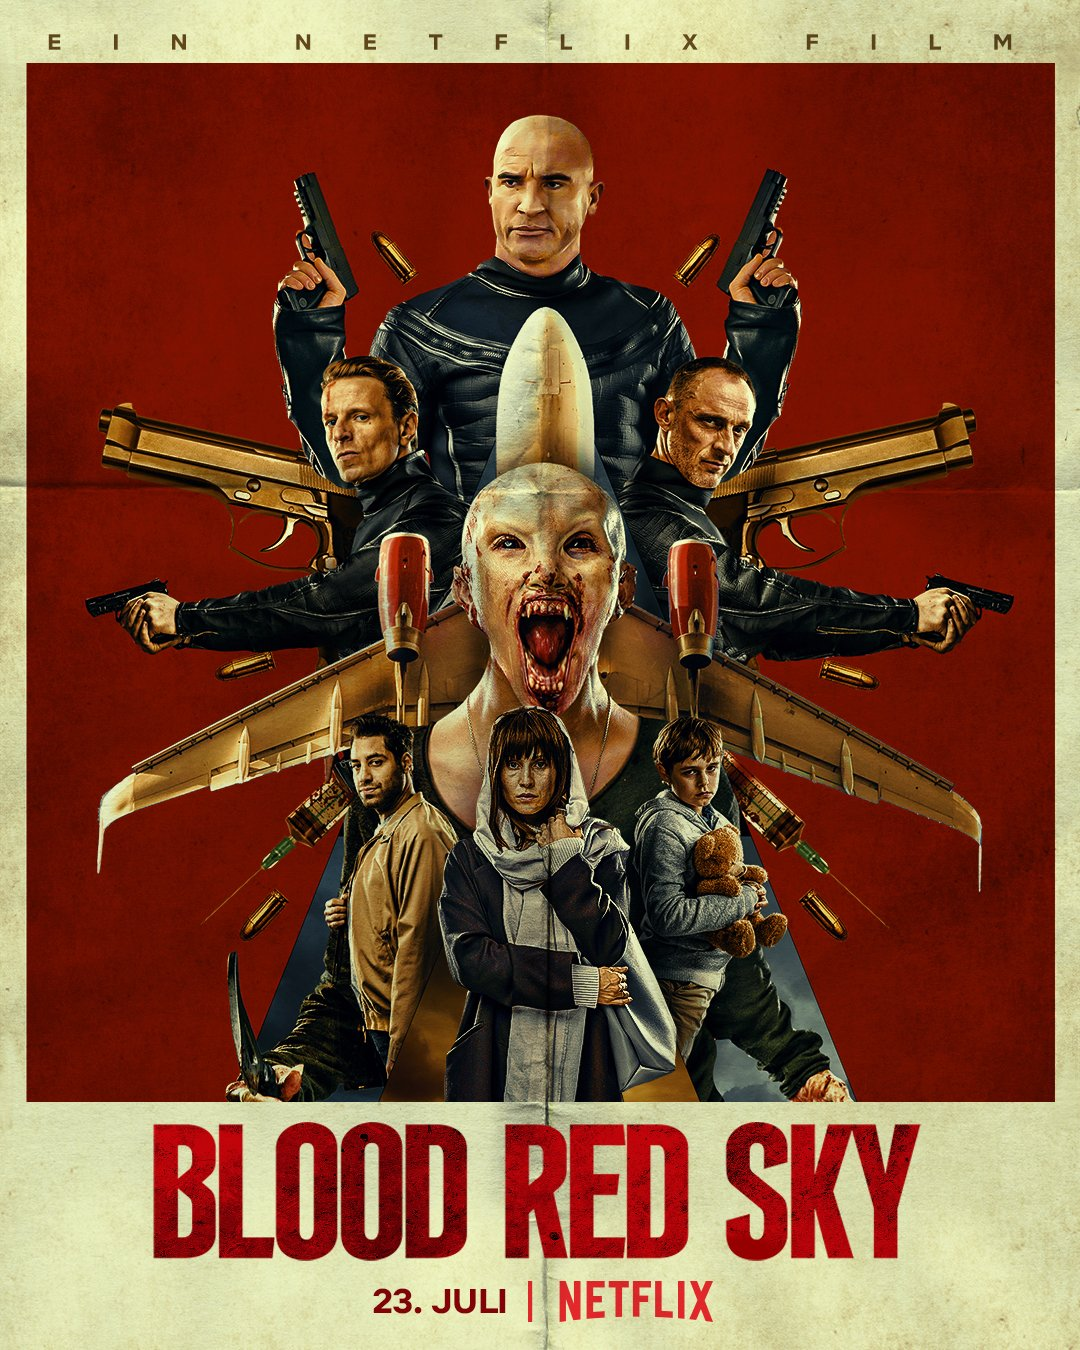 Blood Red Sky 2021 Dual Audio ORG 400MB NF HDRip 480p MSubs Free Download